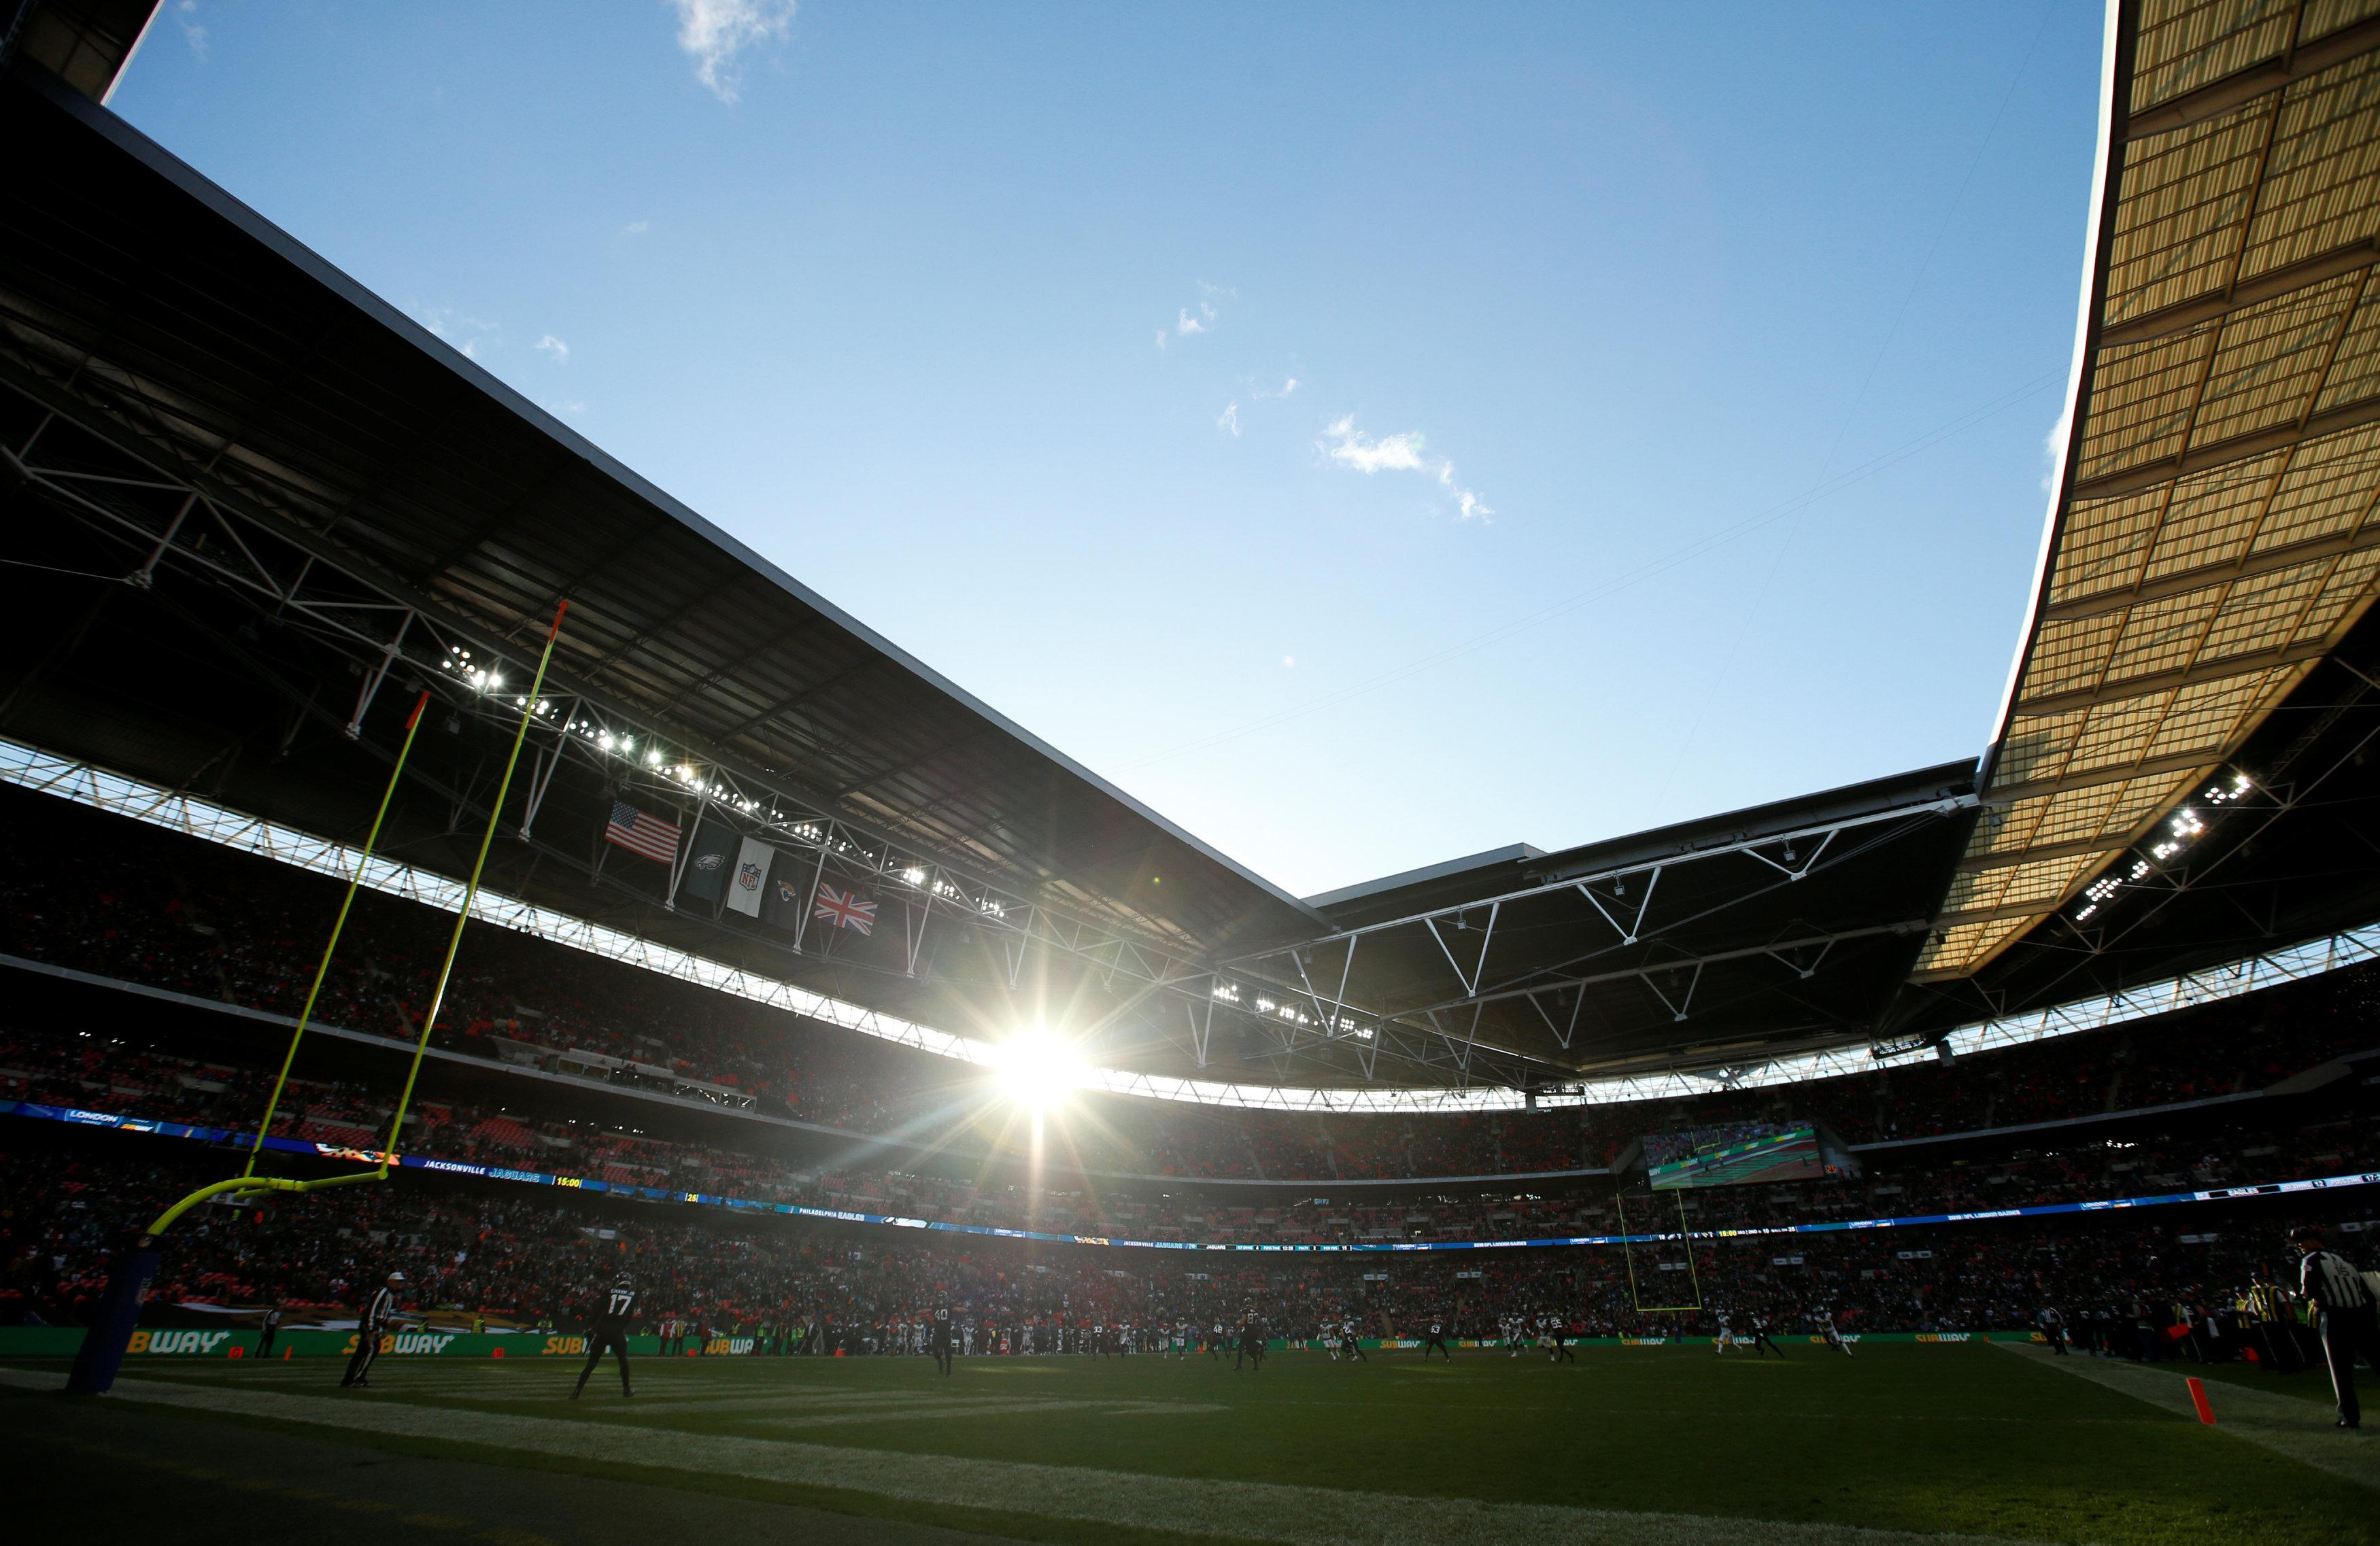 The sun was shining at Wembley as the Eagles soared to a nervy win